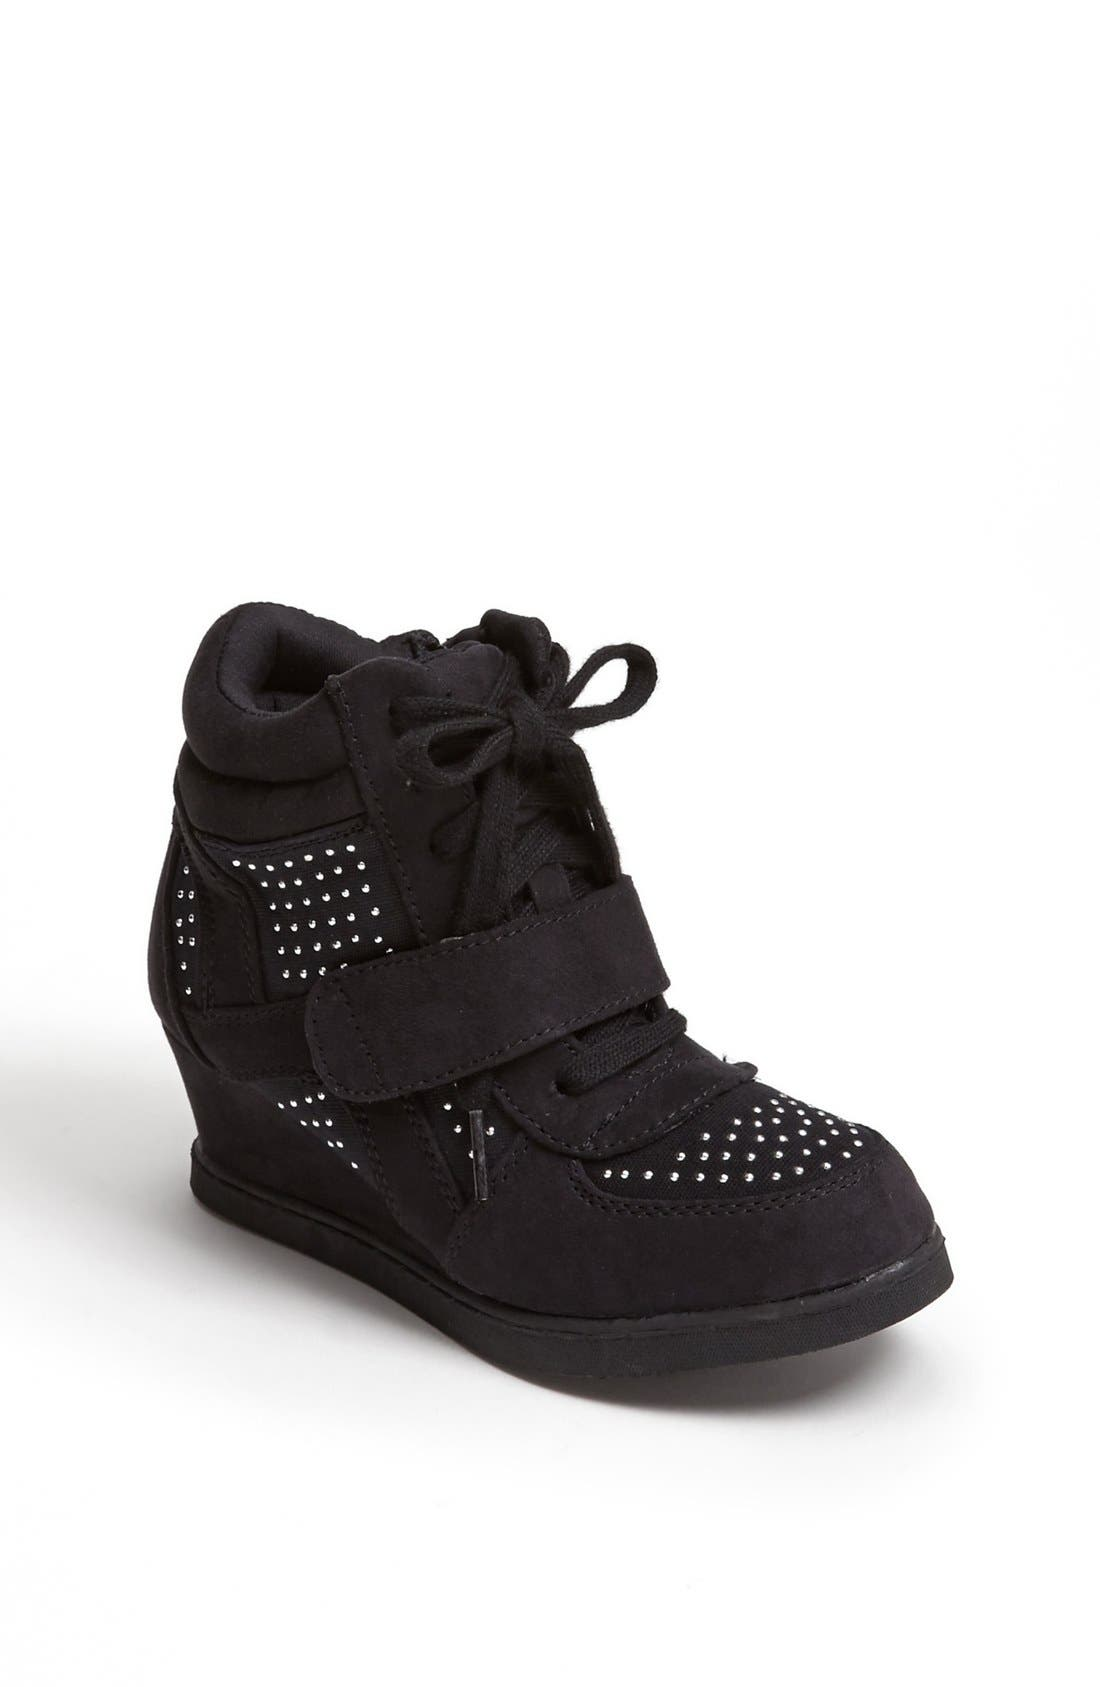 Main Image - Steve Madden 'Glamm' Sneaker Wedge (Little Kid & Big Kid)